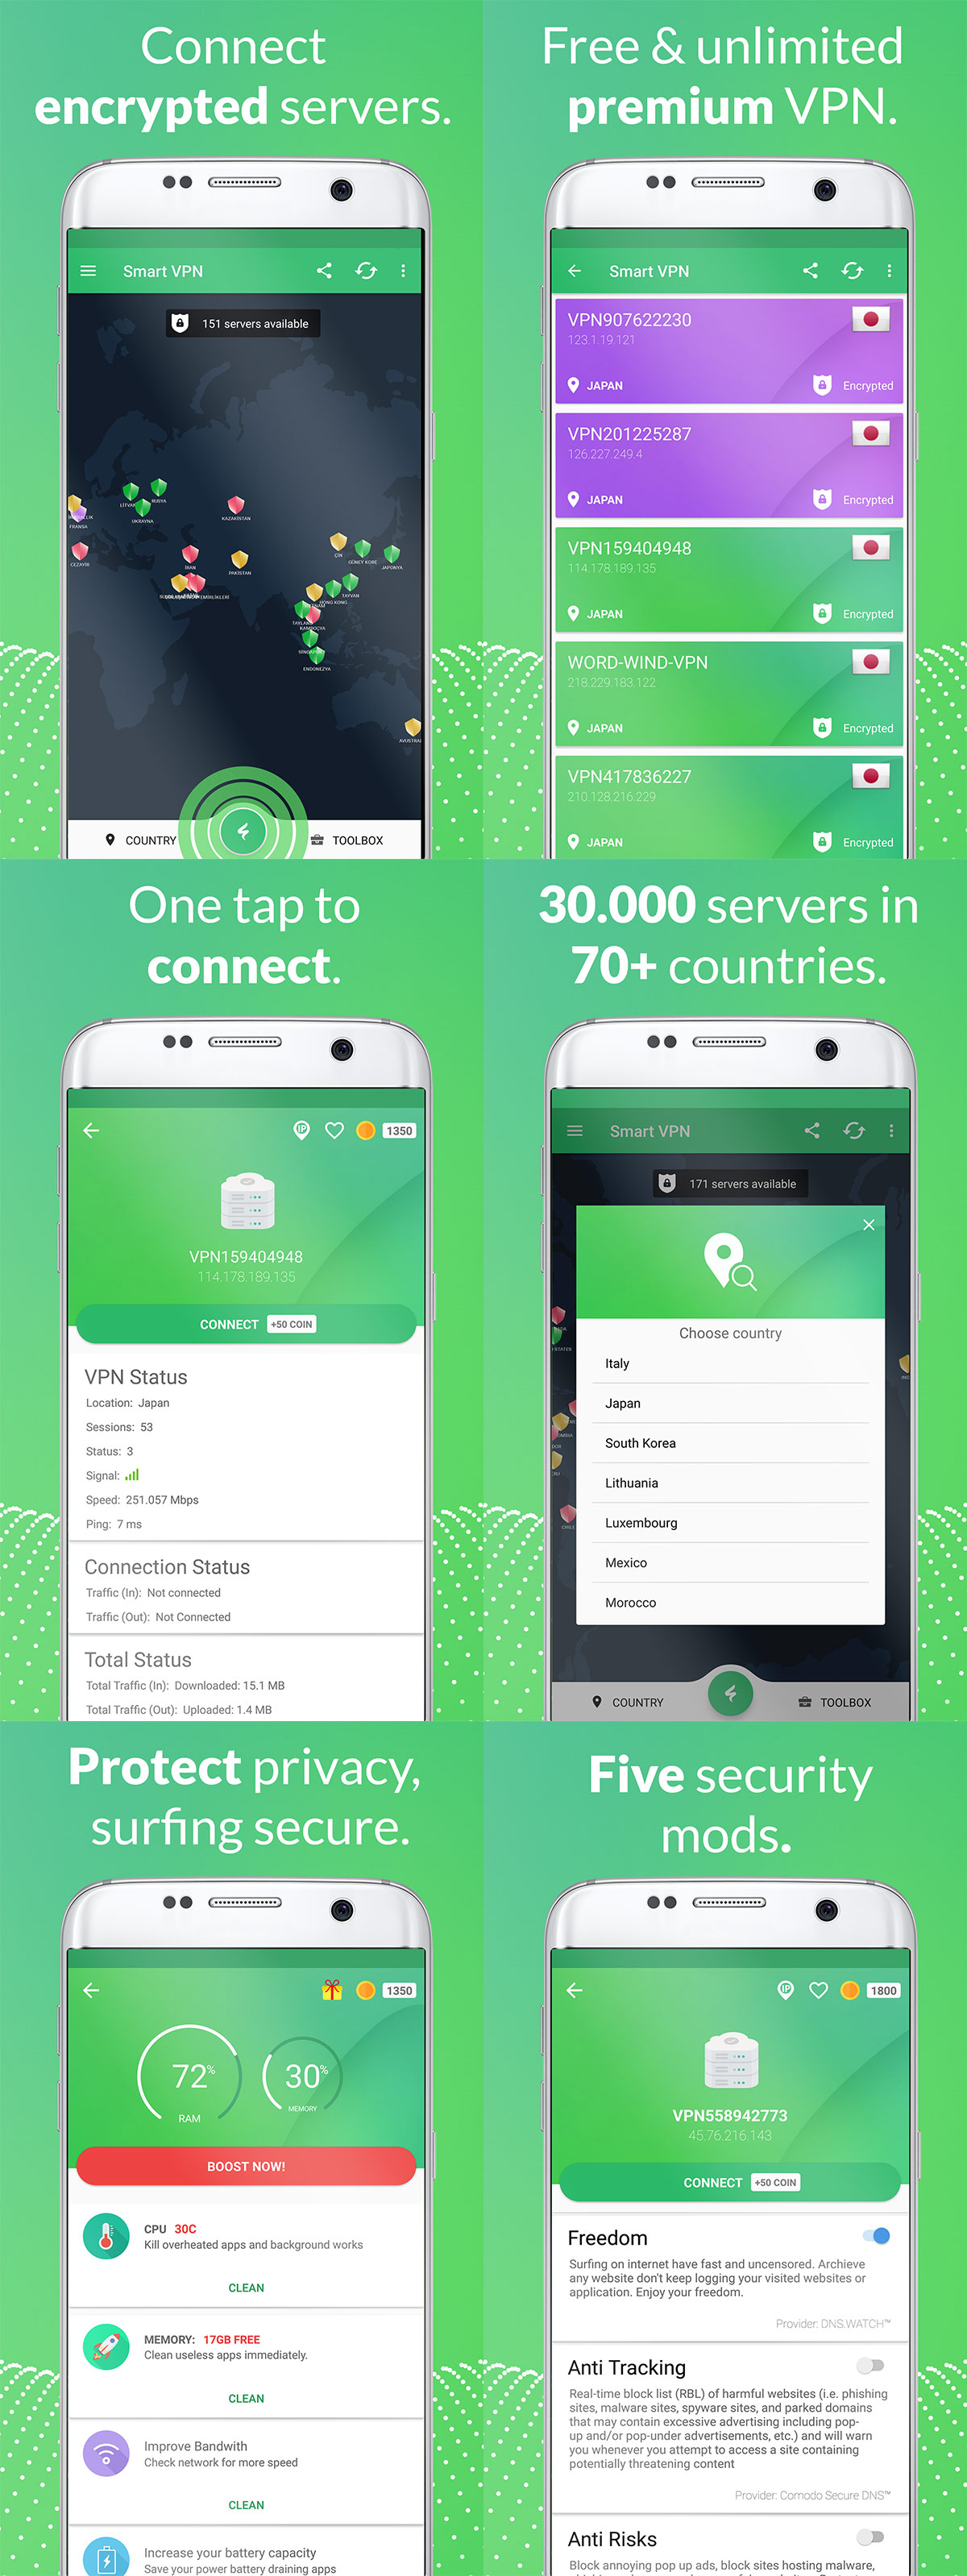 App Unlimited Free Fast Vpn Dns Changer With Adblocker 1000 Servers Xda Developers Forums